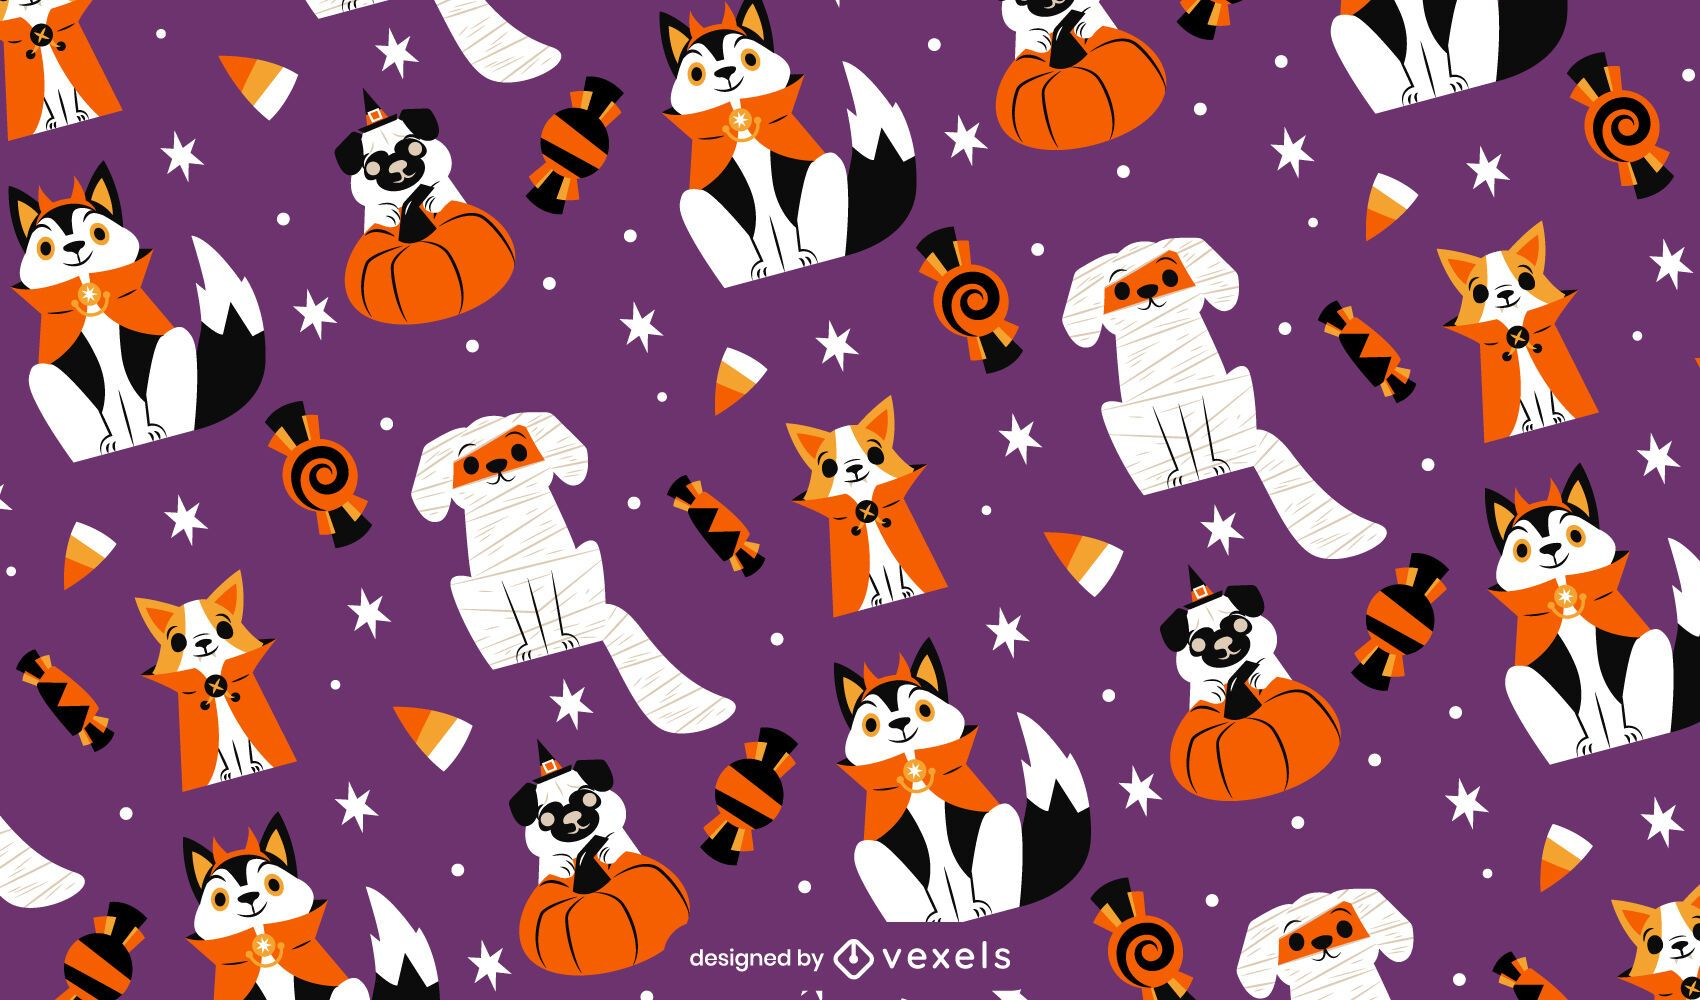 Dogs in halloween costumes pattern design